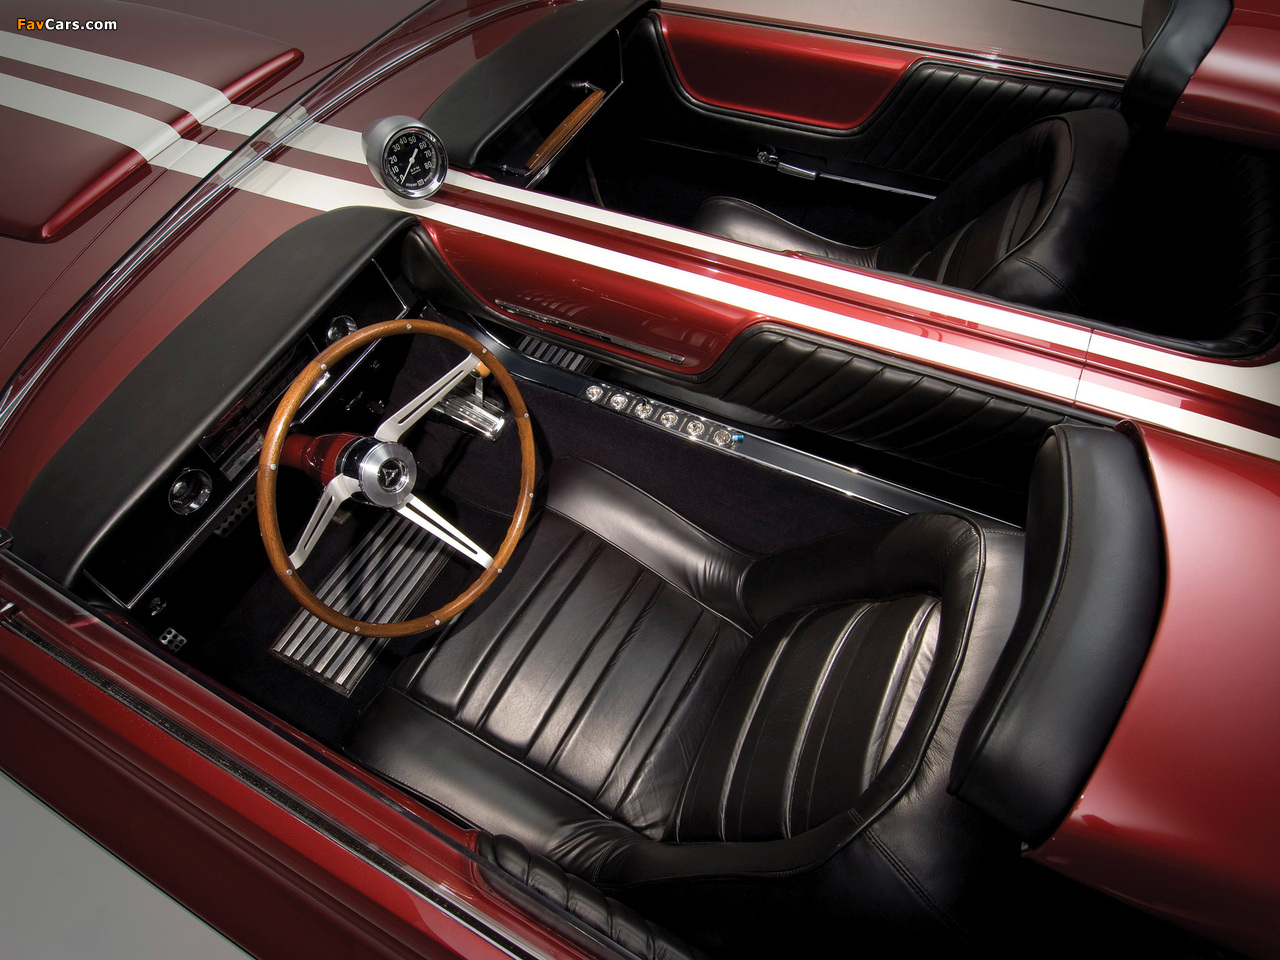 Dodge Charger Roadster Concept Car 1964 wallpapers (1280 x 960)